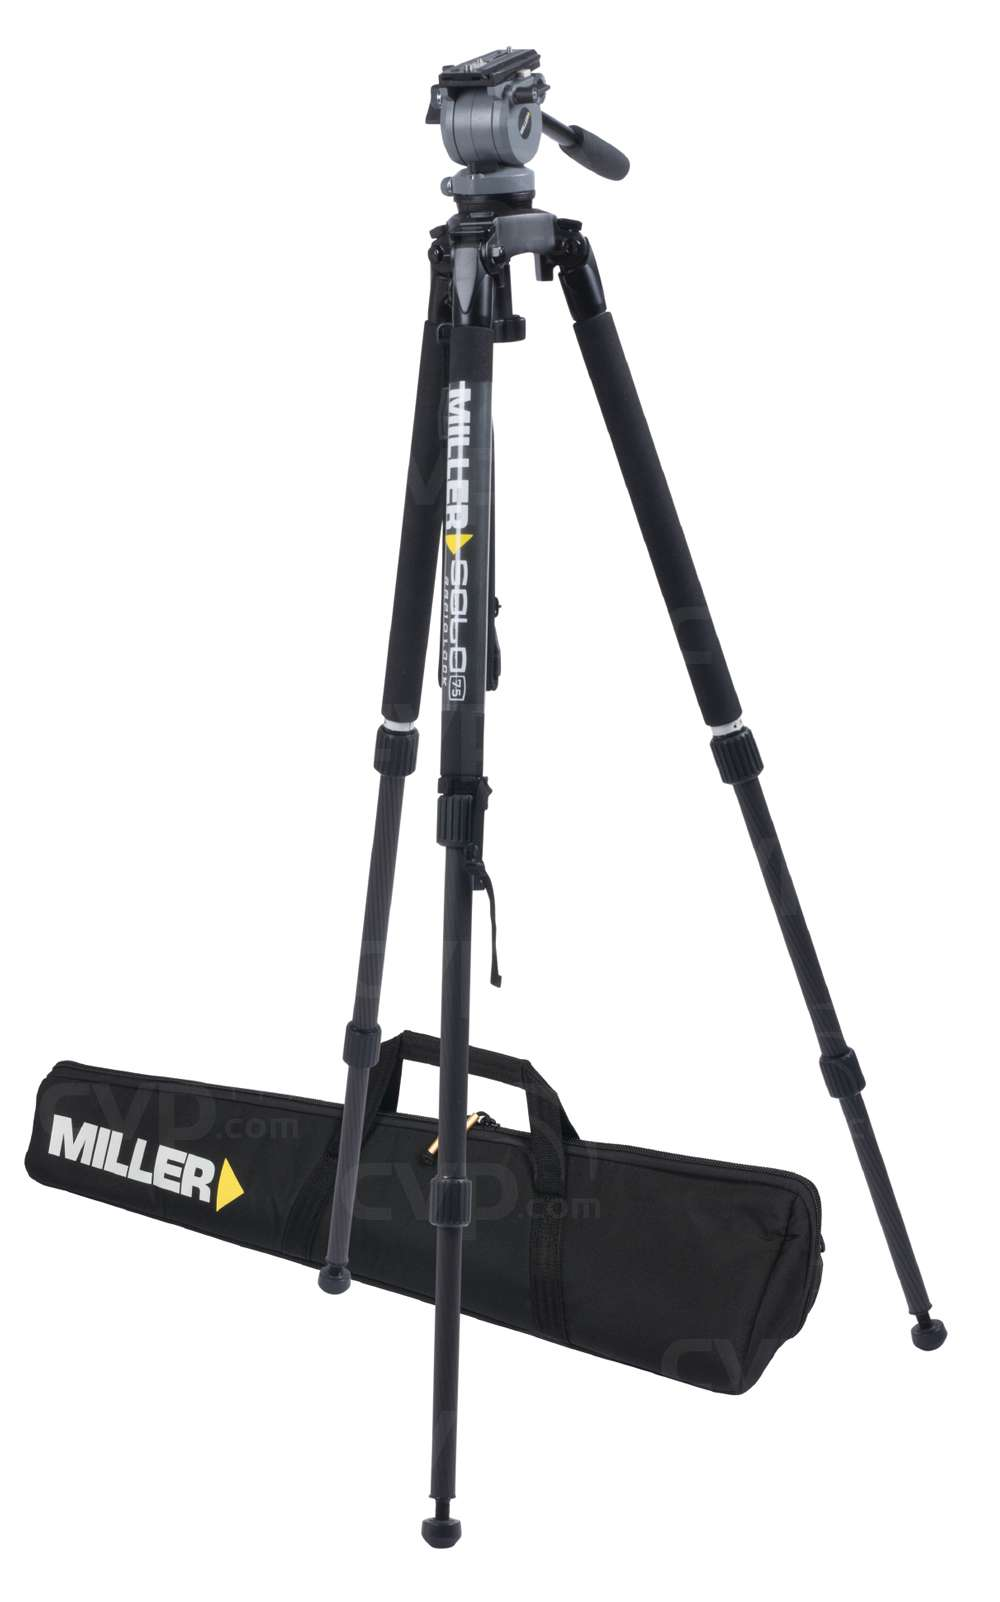 Miller CAT1637 DS5 Professional Video Tripod Image